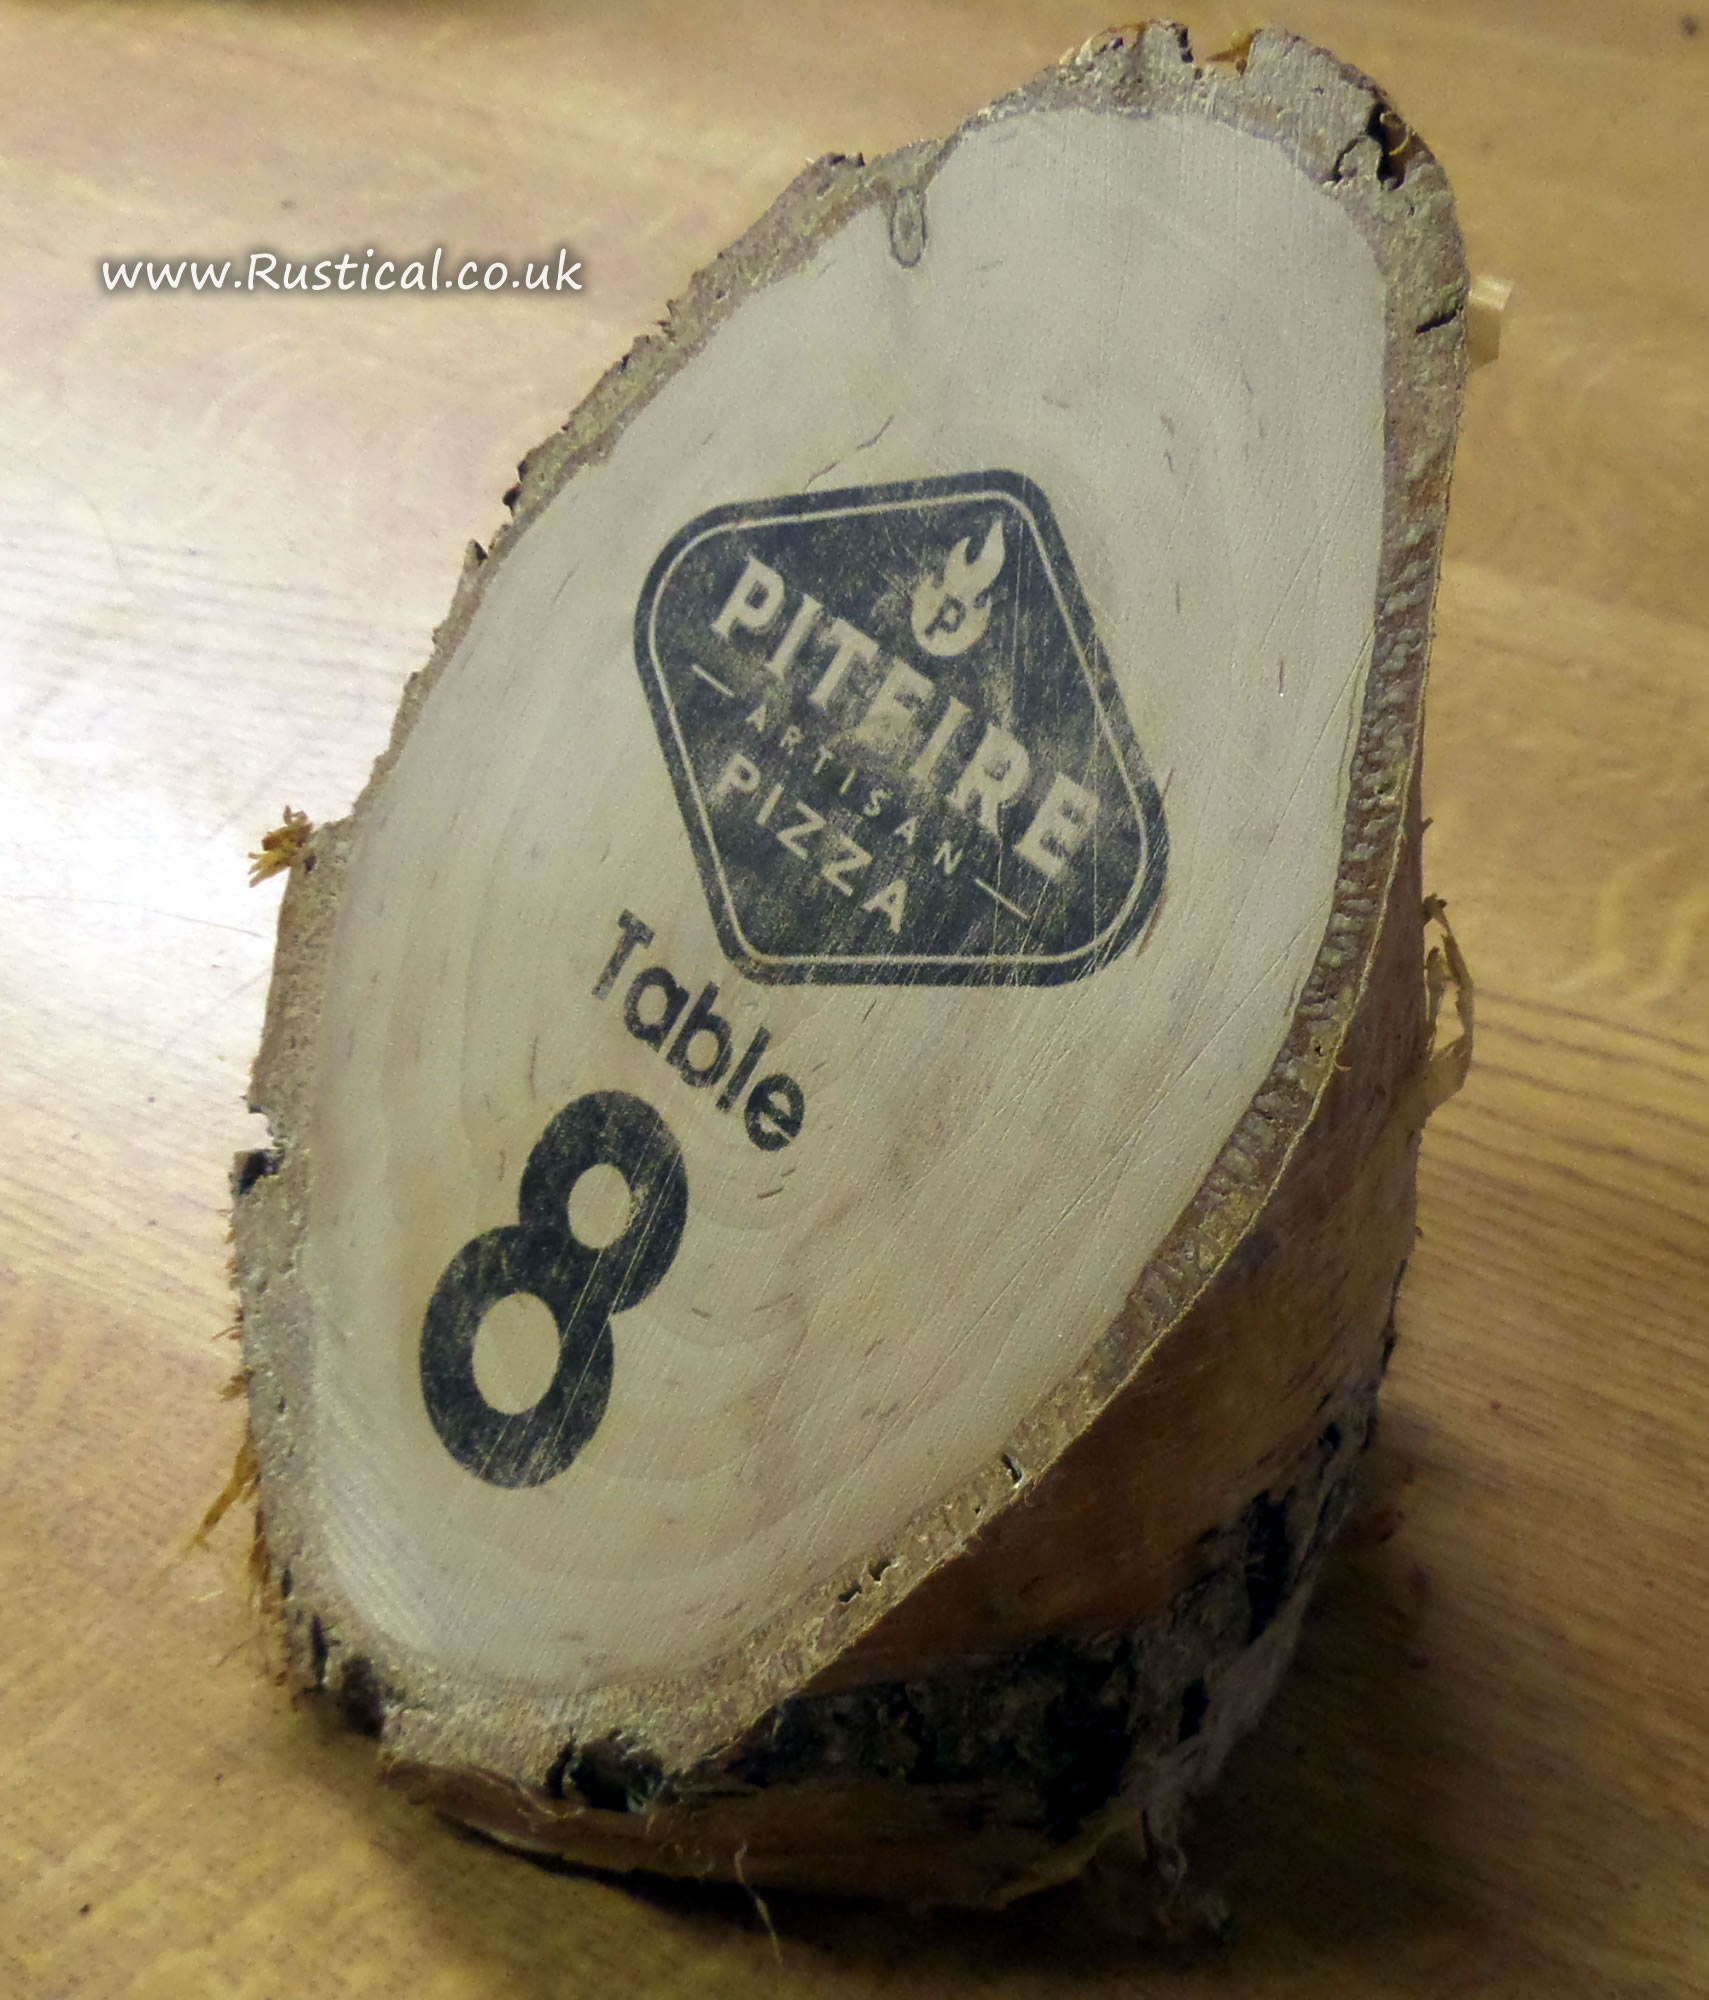 Rustic Log Pizza Restaurant Table Numbers Rustical